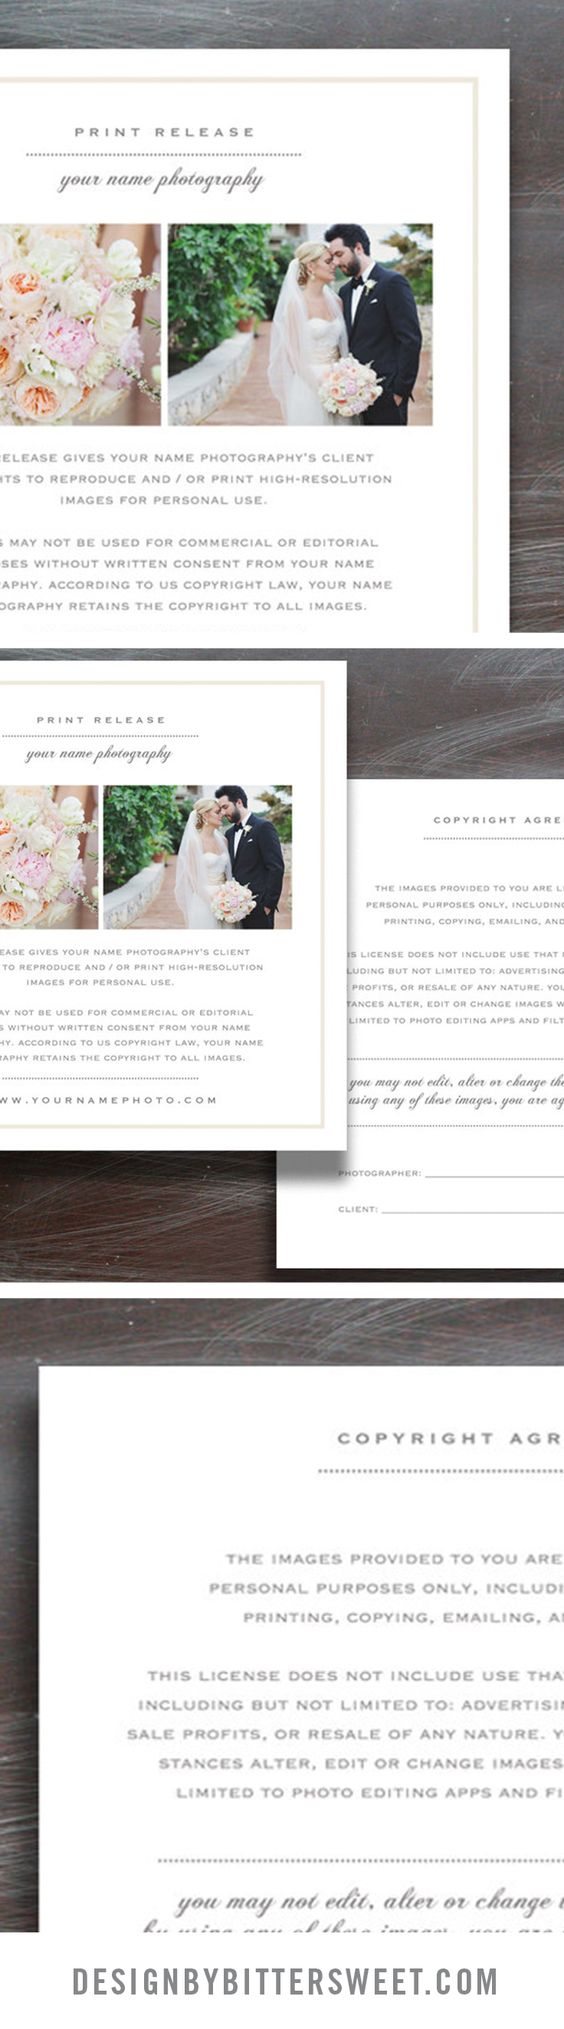 Wedding Photographer Licensing Forms  Print Release Template